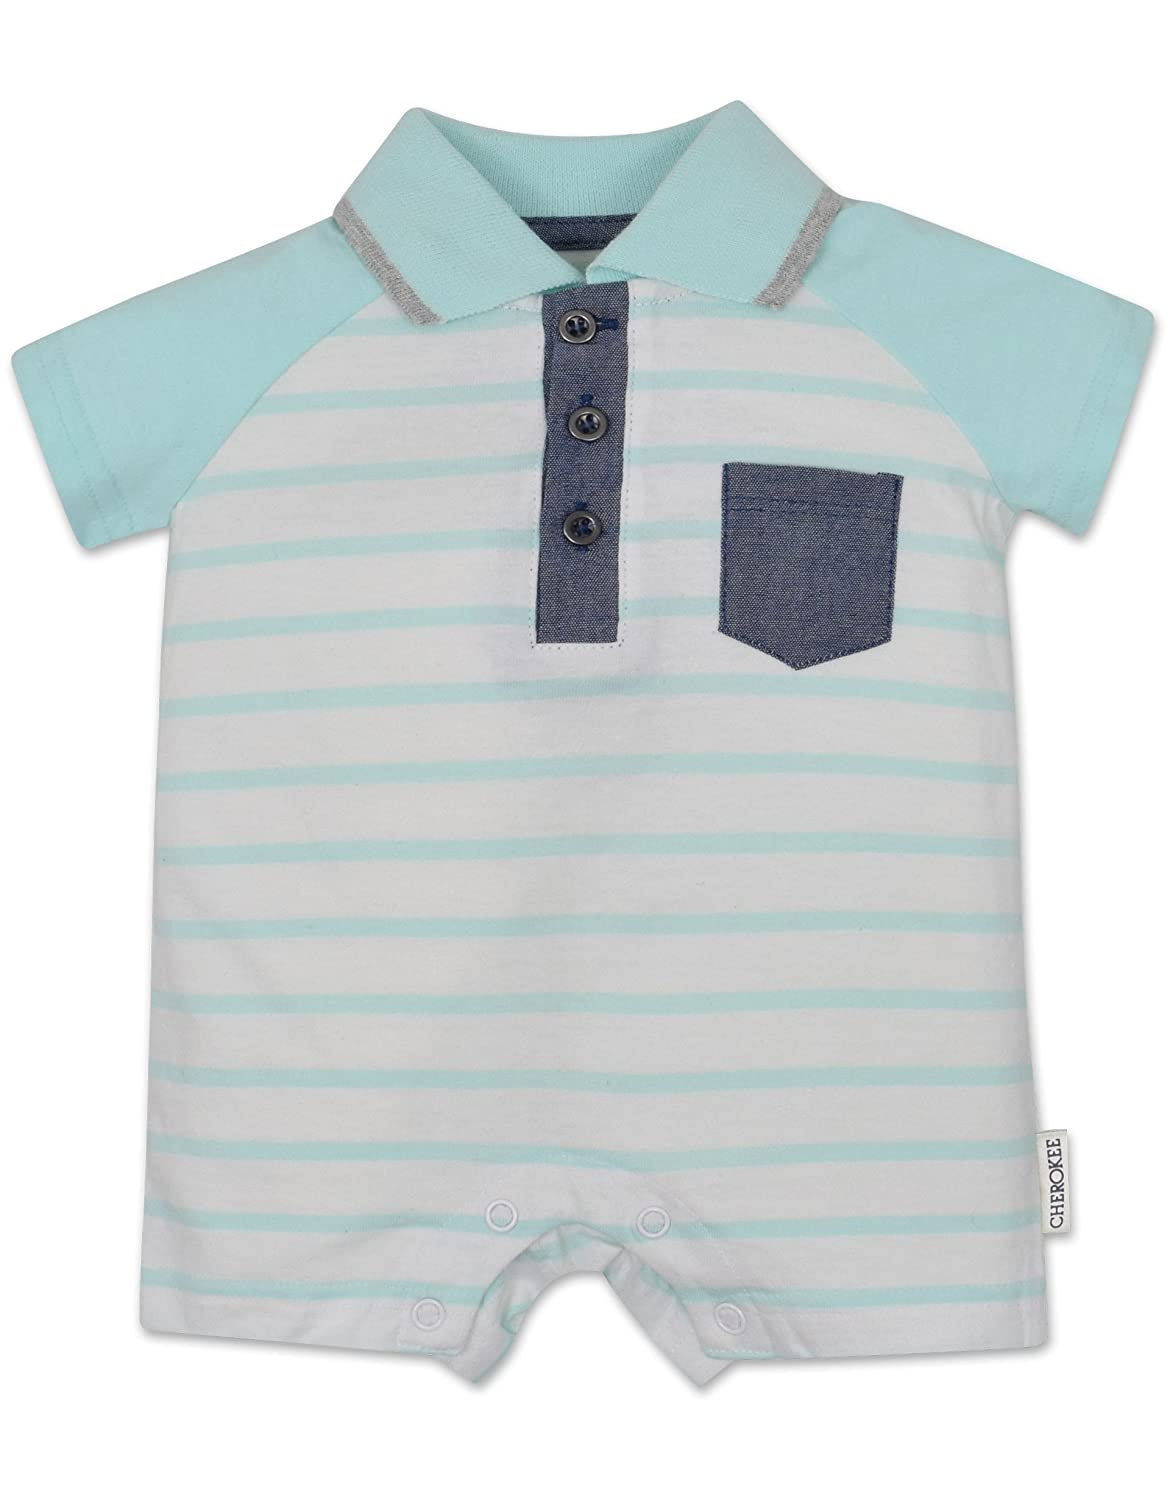 Cherokee Baby Boys Romper with Fashion Collar and Buttons White with Blue Stripes